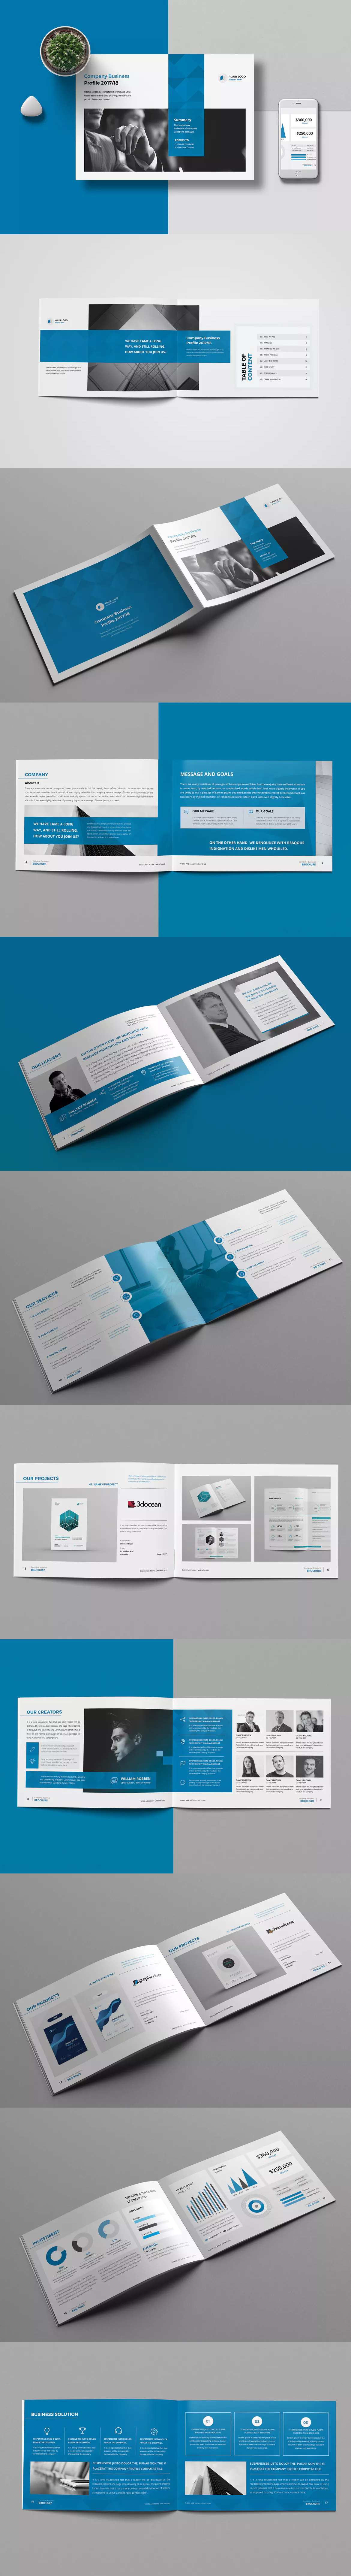 Company Profile 20 Pages Template InDesign INDD - A5   Company ...